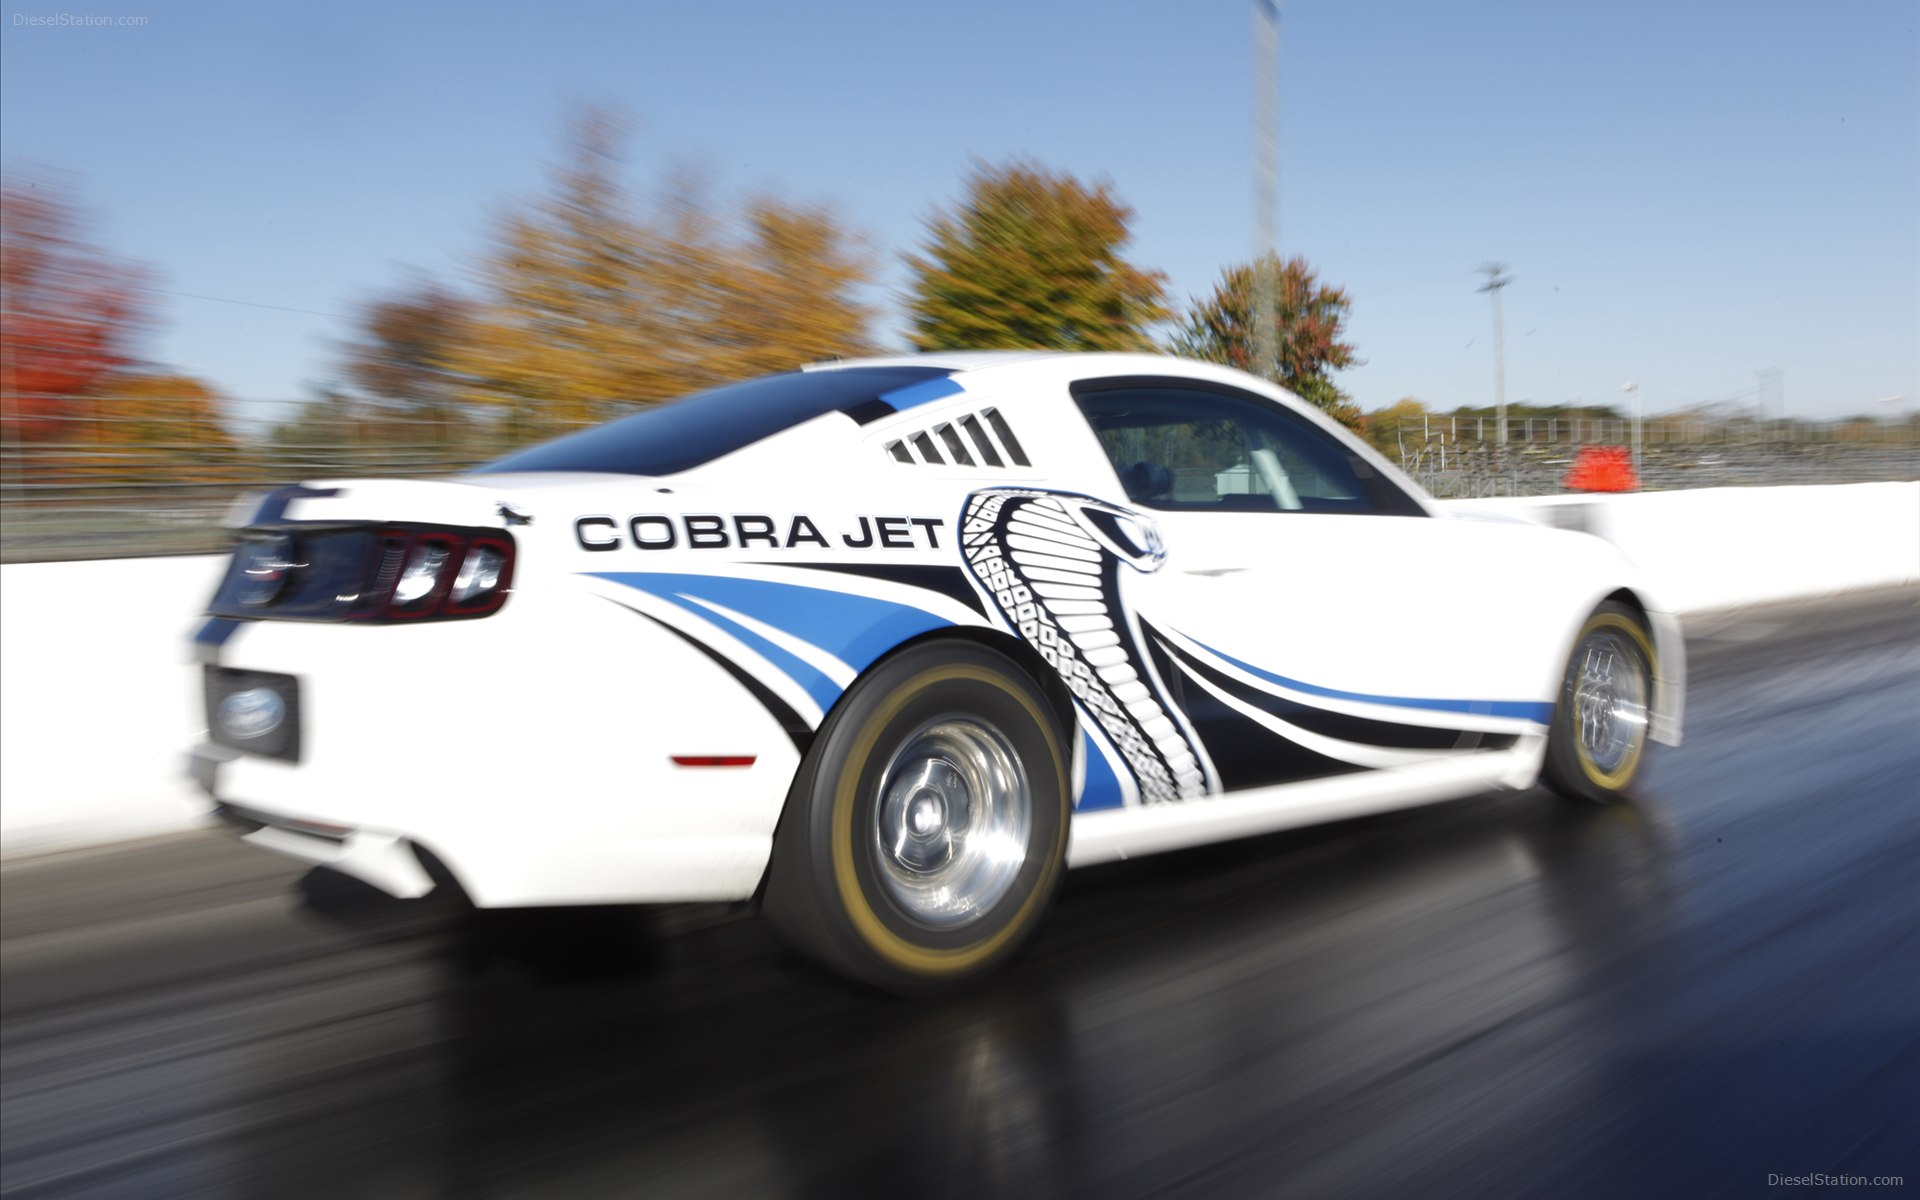 2012 Ford Mustang Cobra Jet Twin Turbo Concept photo - 1